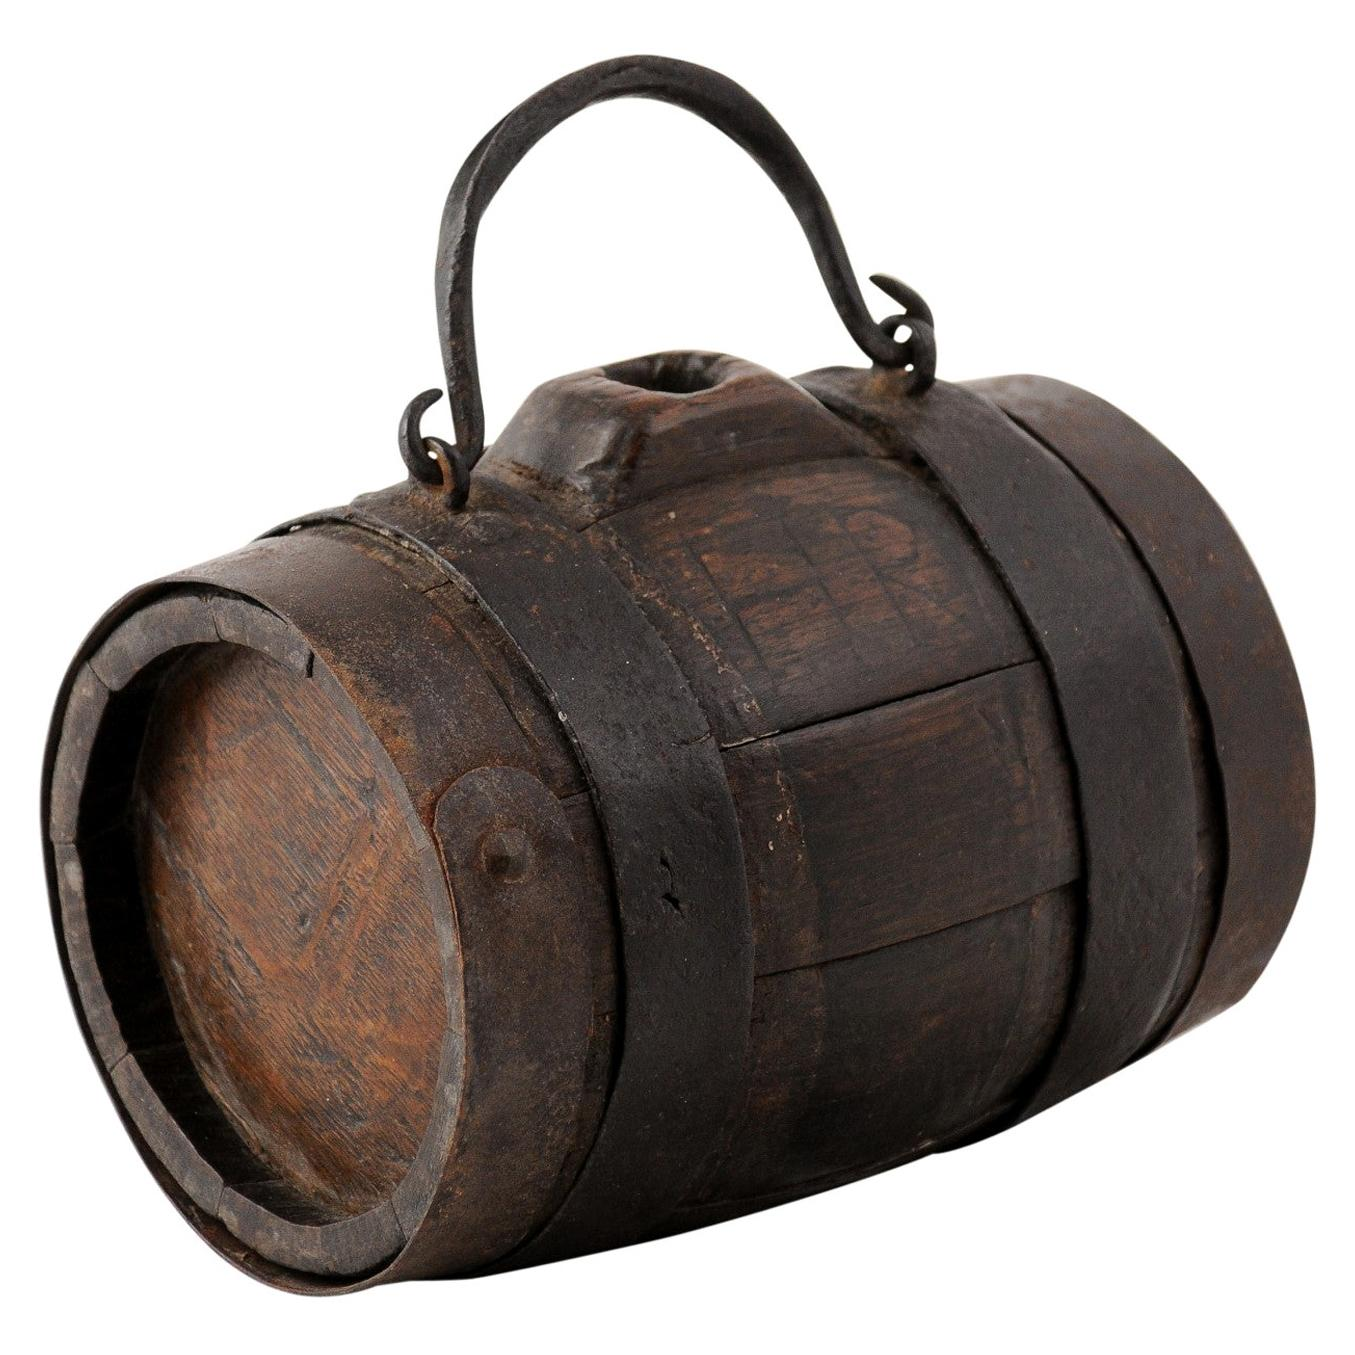 Rustic French 19th Century Petite Decorative Barrel with Iron Handle and Braces